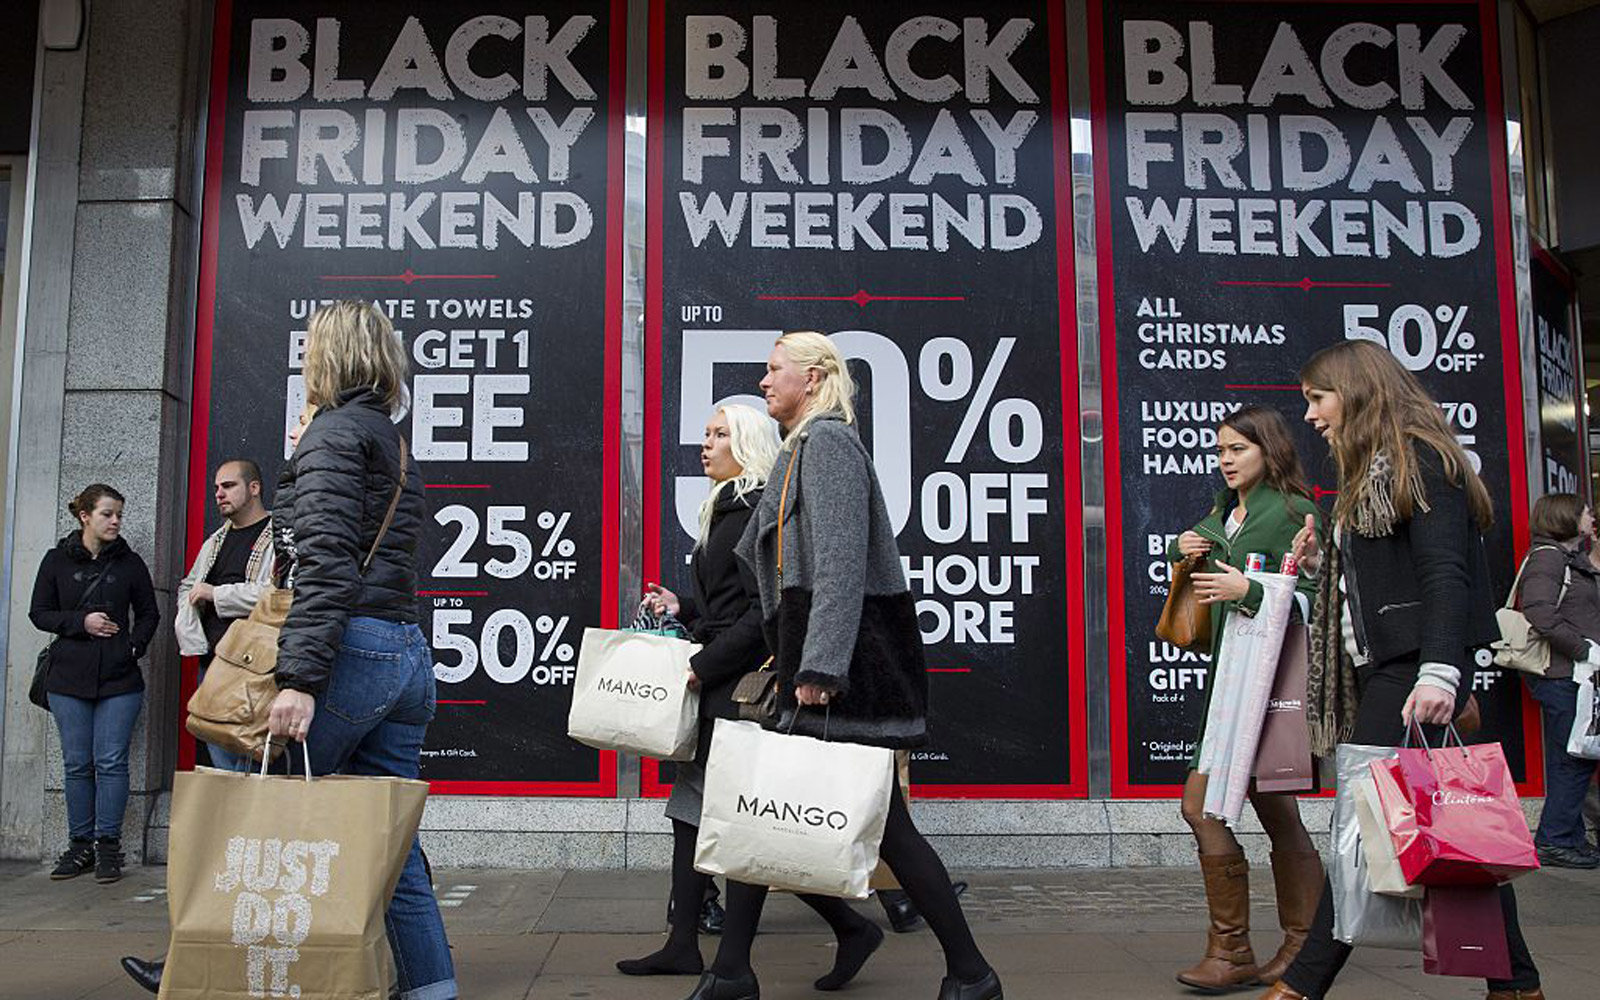 Shoppers are pictured walking past 'Black Friday' advertising in shop windows on Oxford Street in central London